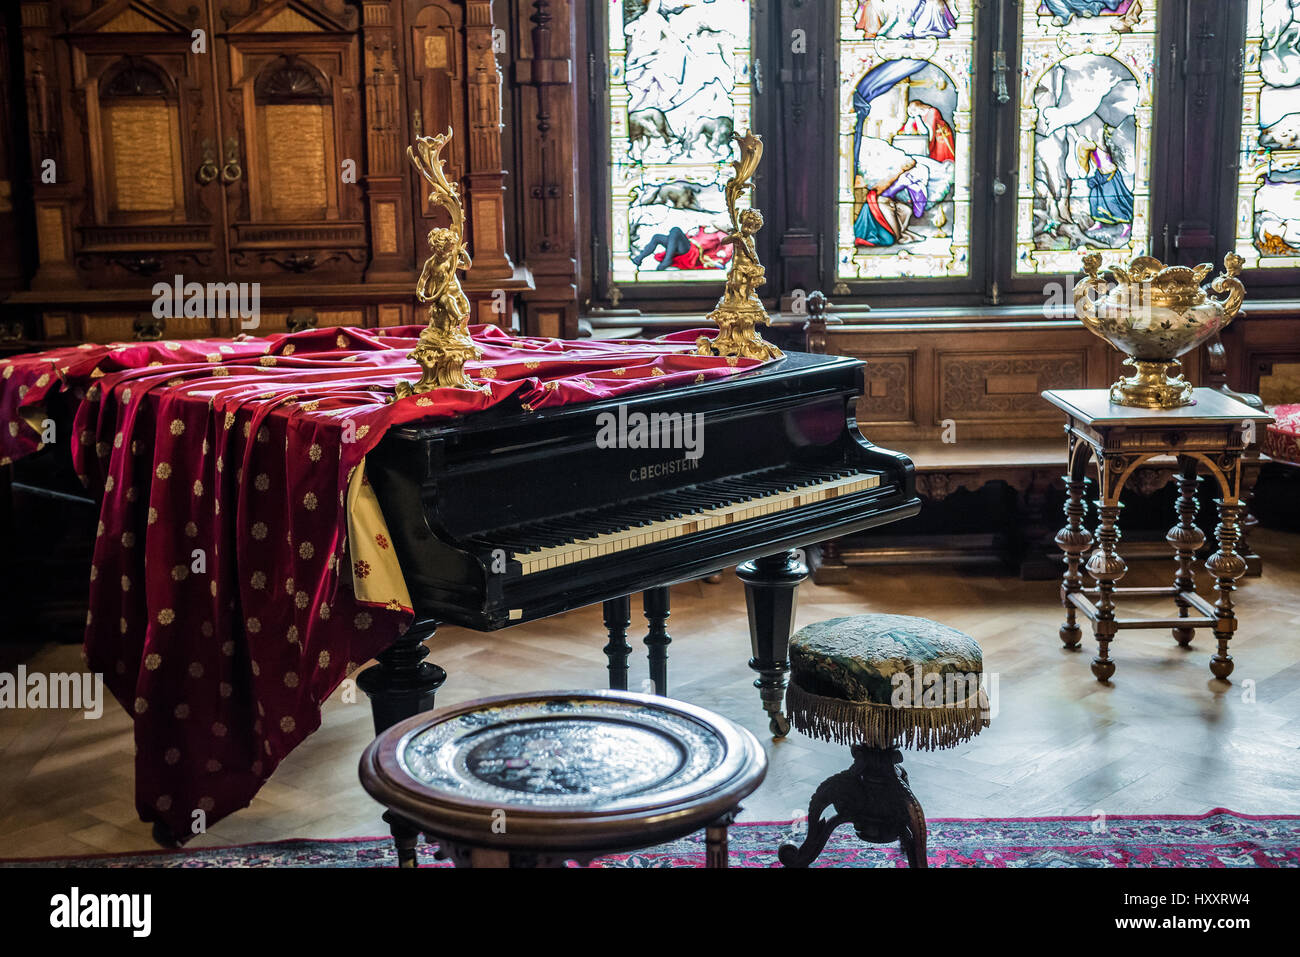 Empty room with chair violin and sheet music on floor photograph - Carl Bechstein Grand Piano In Music Room Of Peles Palace Former Royal Castle Built